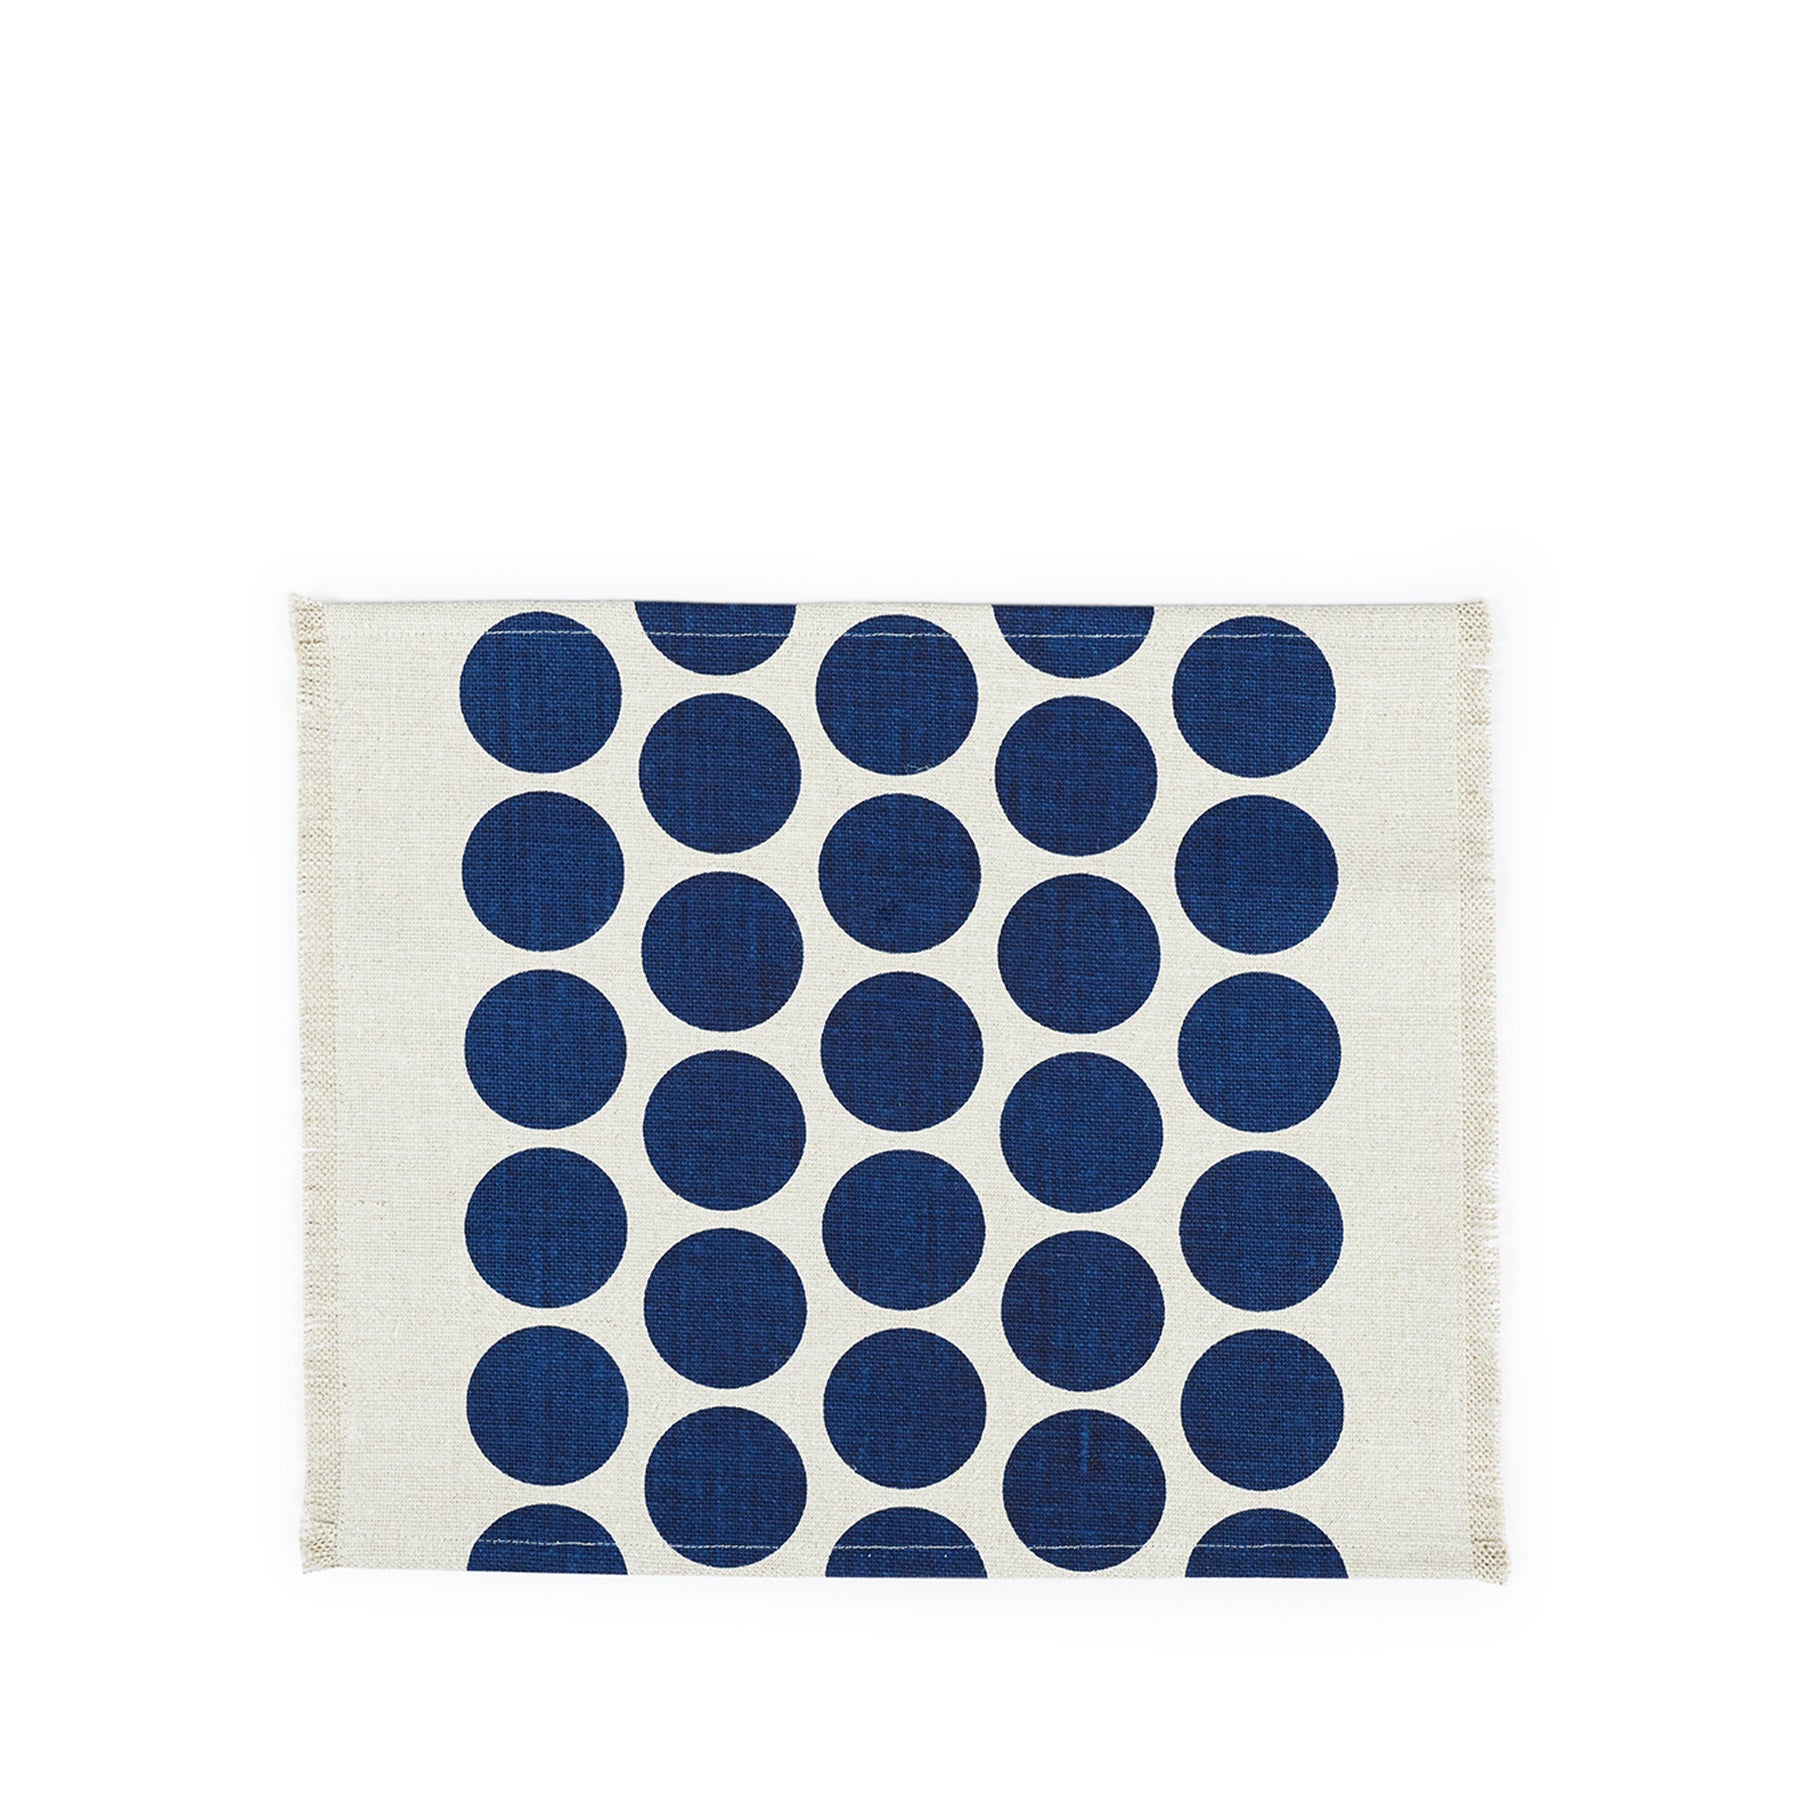 Wilde Linen Solid Circles Placemat in Blue Zoom Image 1